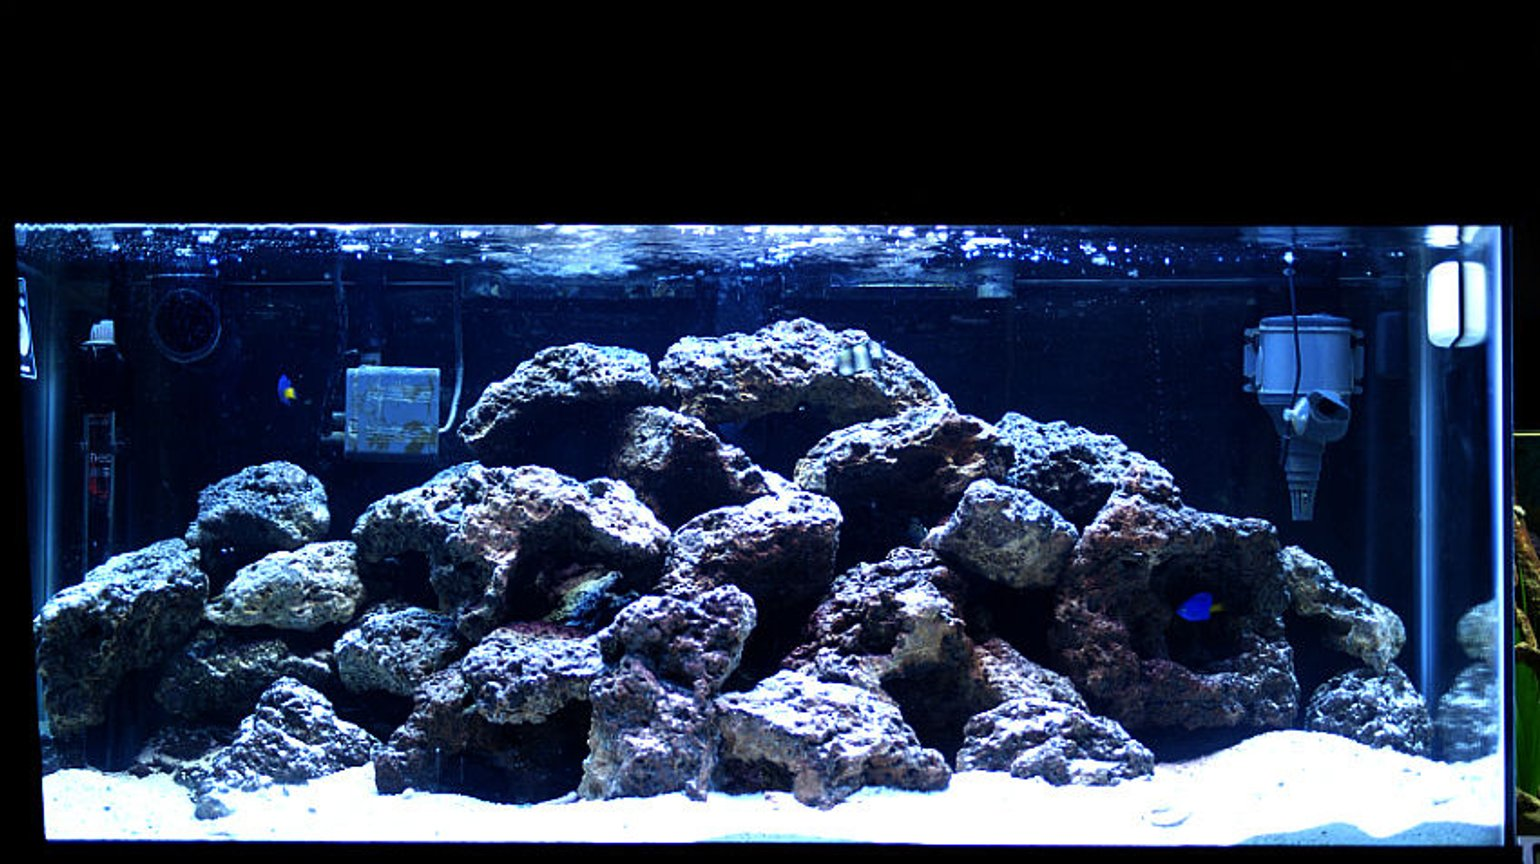 50 gallons saltwater fish tank (mostly fish, little/no live coral) - damsels and 70 pounds of live rock, 50 gallon. Enjoy!